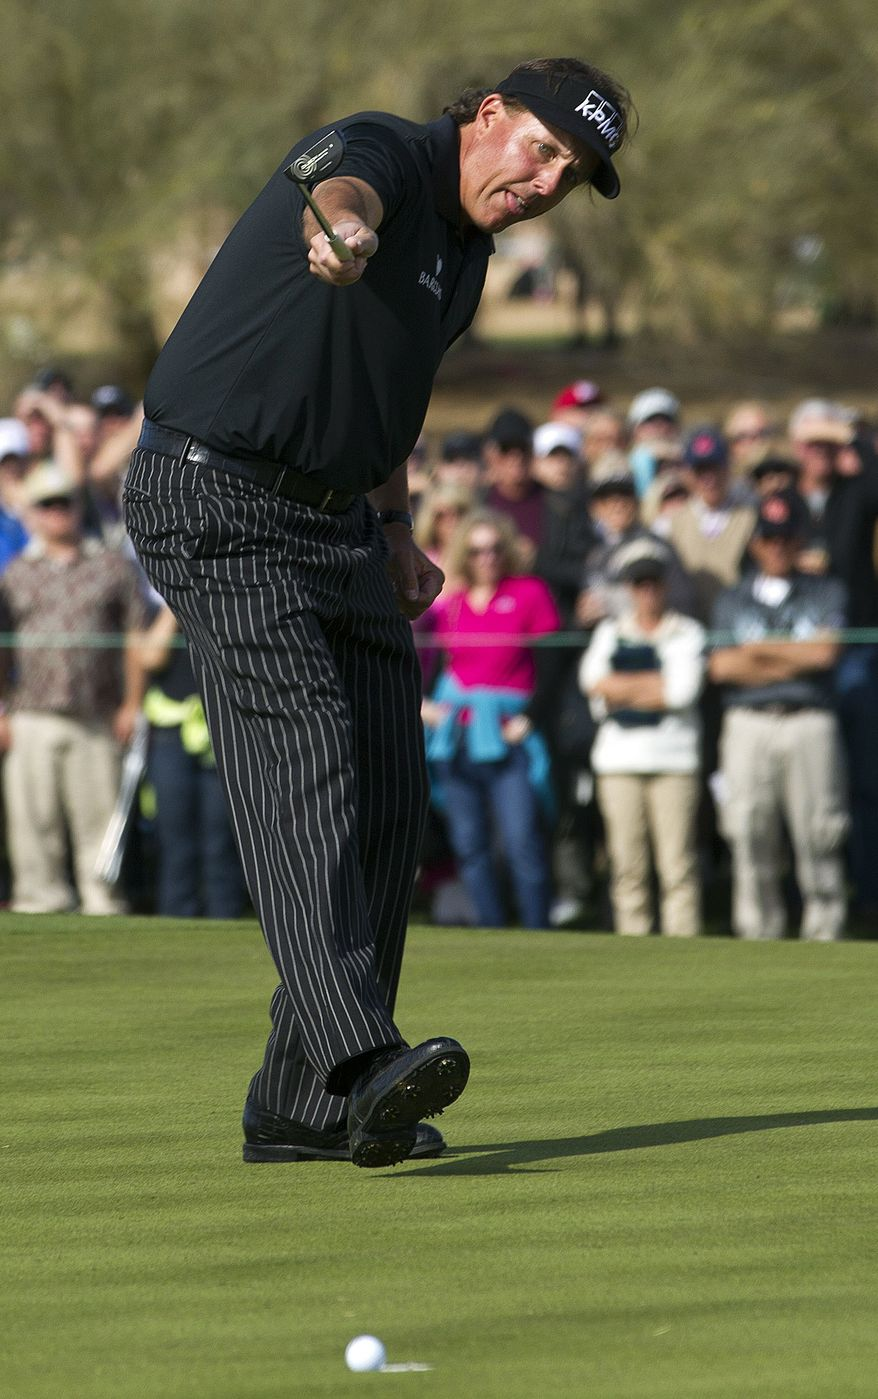 Phil Mickelson watches his birdie putt roll towards the cup on the ninth green during first round of the Phoenix Open golf tournament, Thursday, Jan. 31, 2013, in Scottsdale, Ariz. Mickelson's putt lipped-out, and he had to settle for par on the hole. (AP Photo/The Arizona Republic, Rob Schumacher)